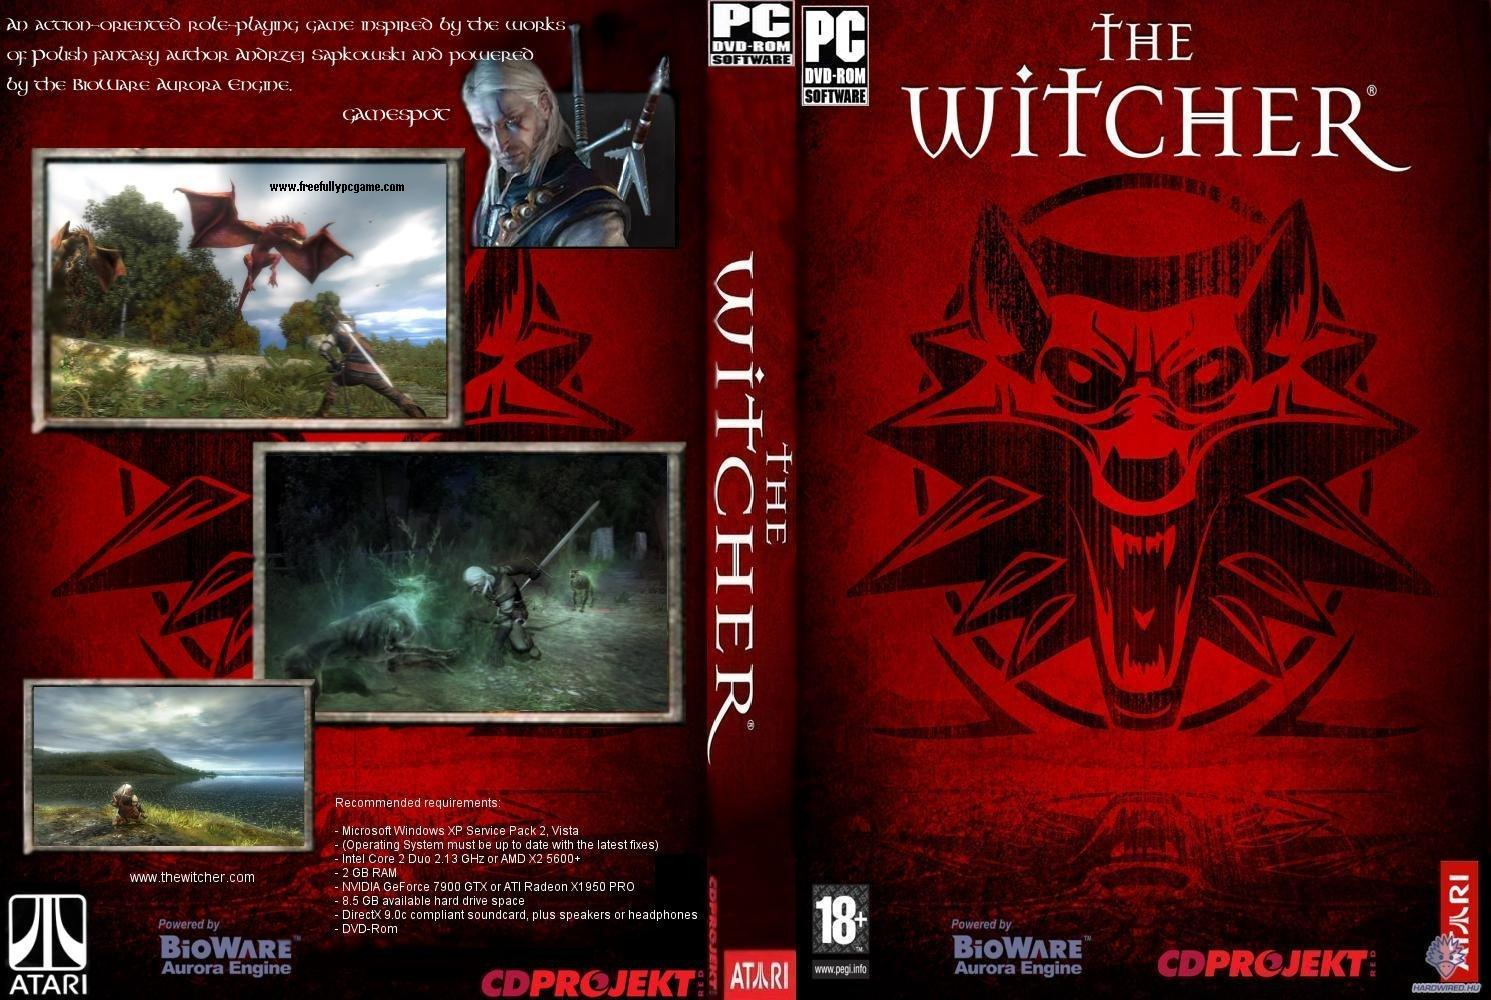 The Witcher 1 Pc Game Enhanced Edition